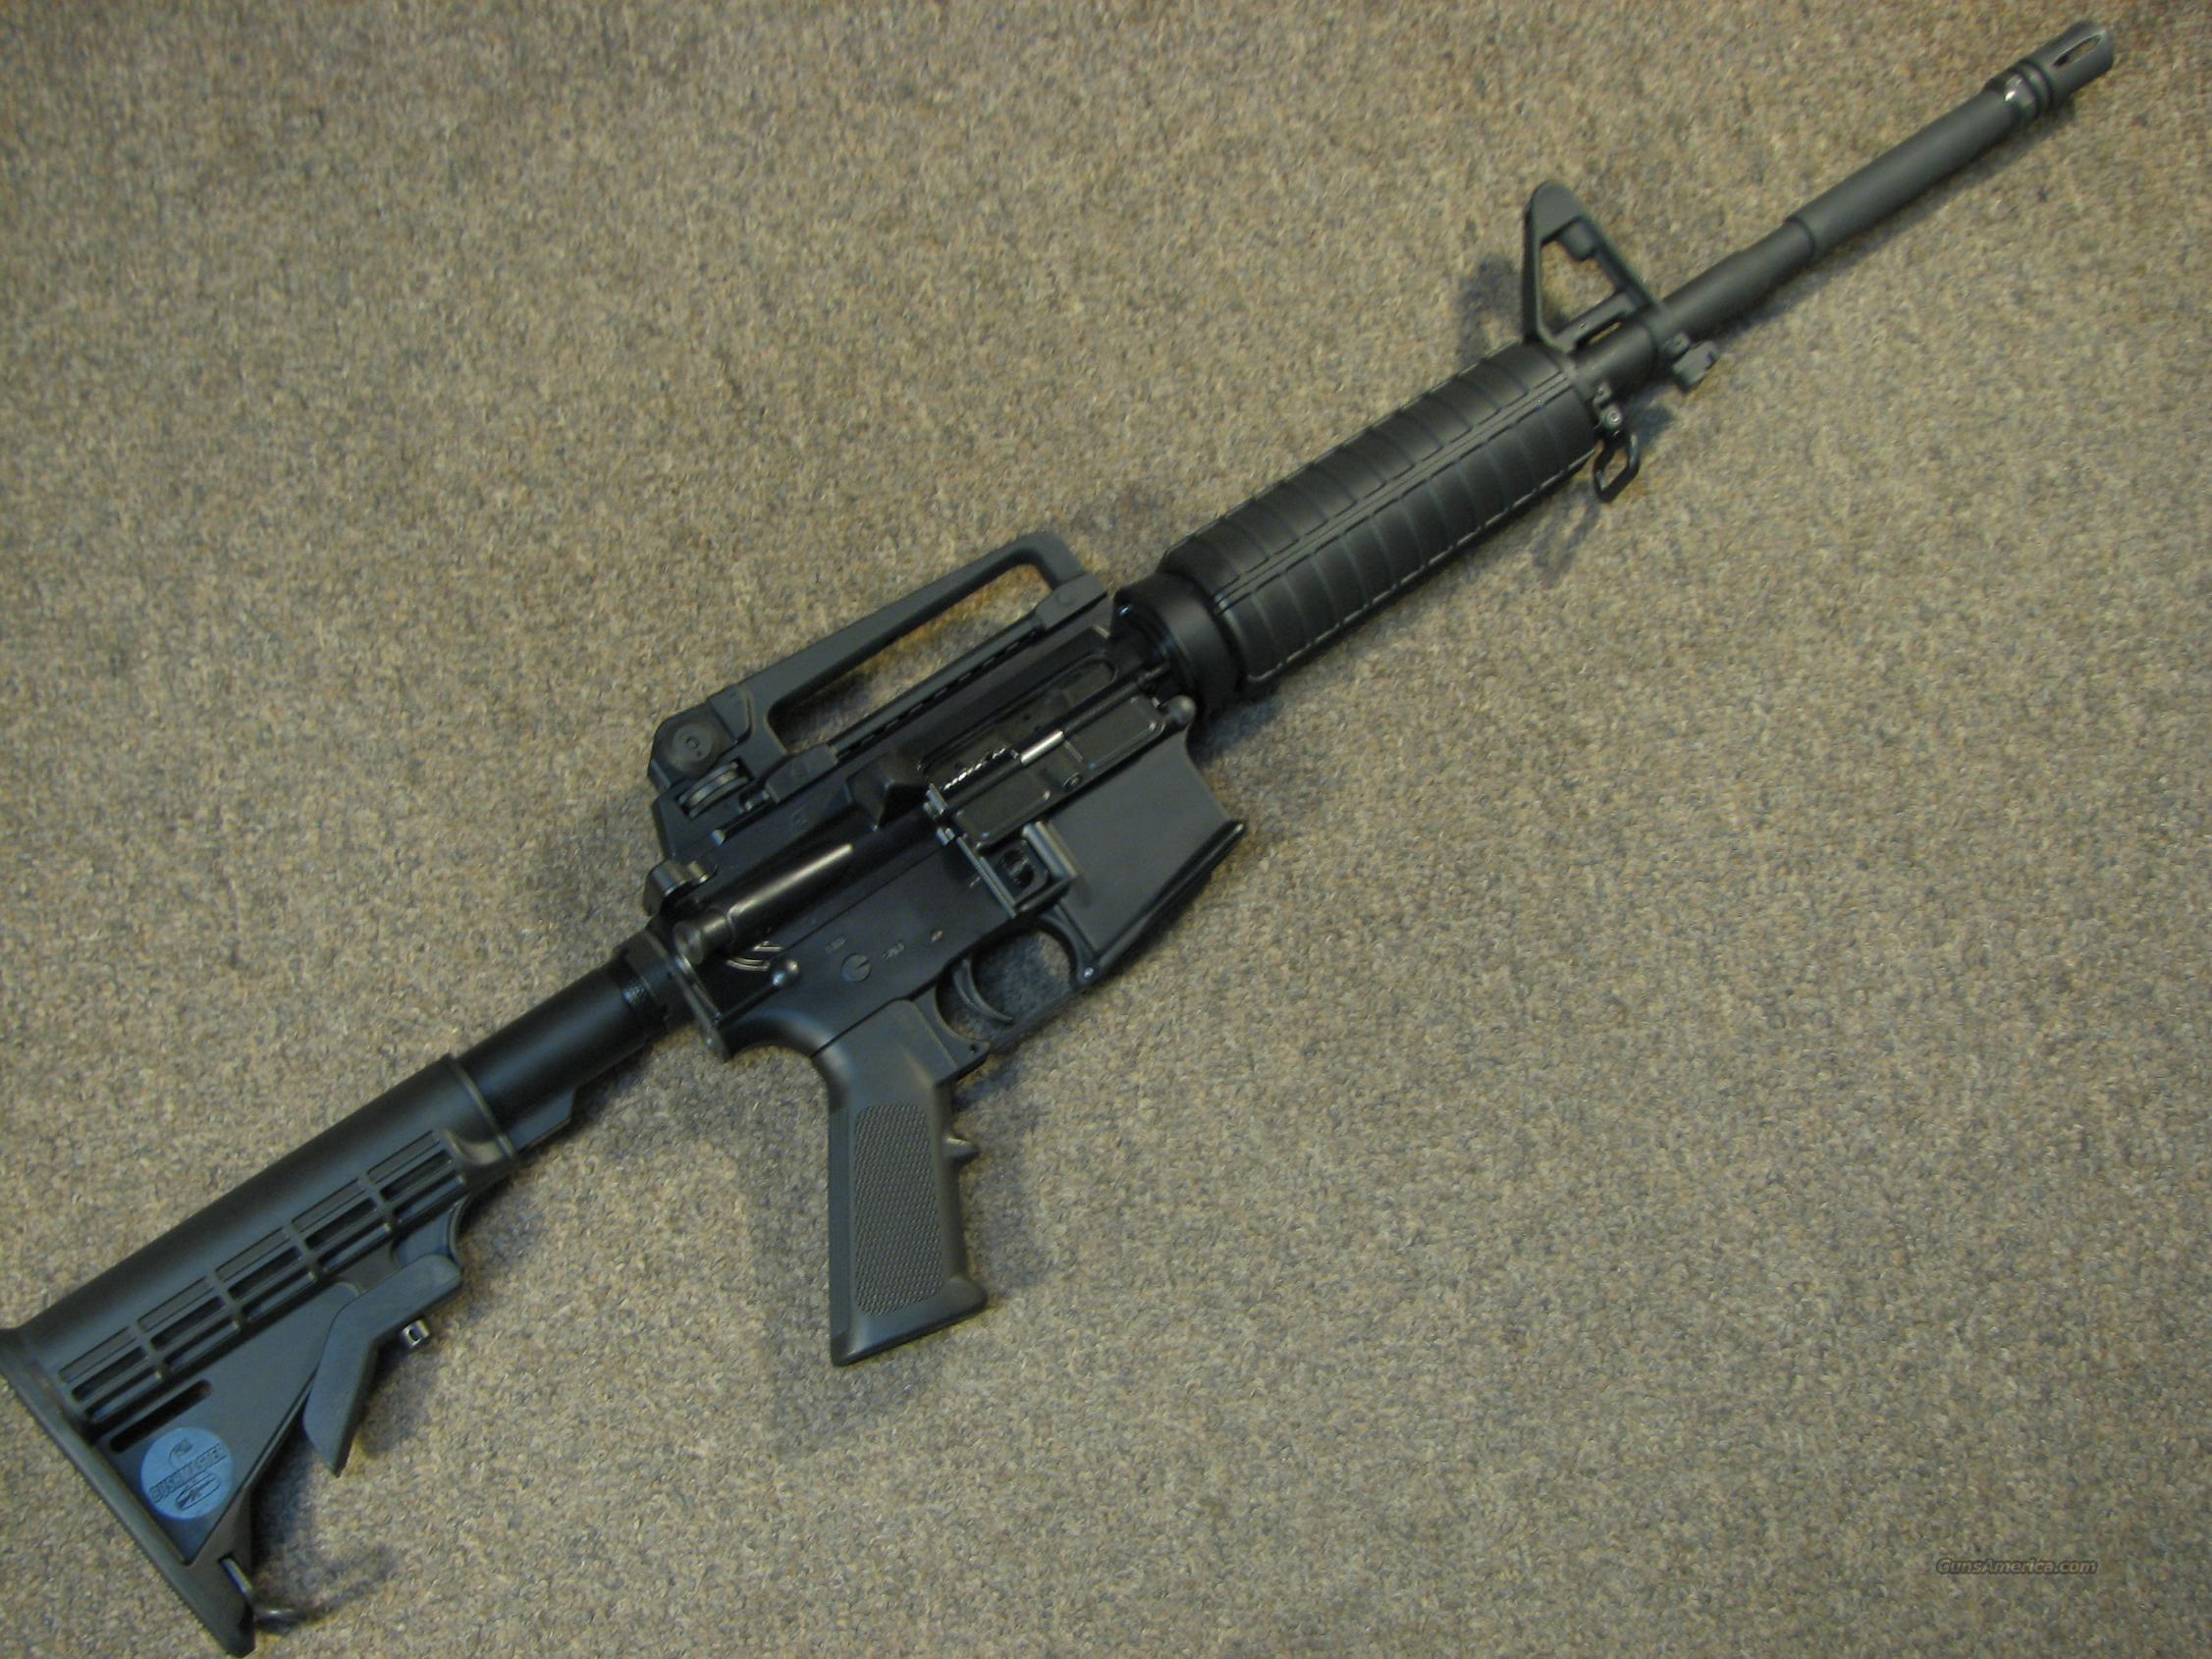 BUSHMASTER XM15-E2S .223 - LIKE NEW!  Guns > Rifles > Bushmaster Rifles > Complete Rifles